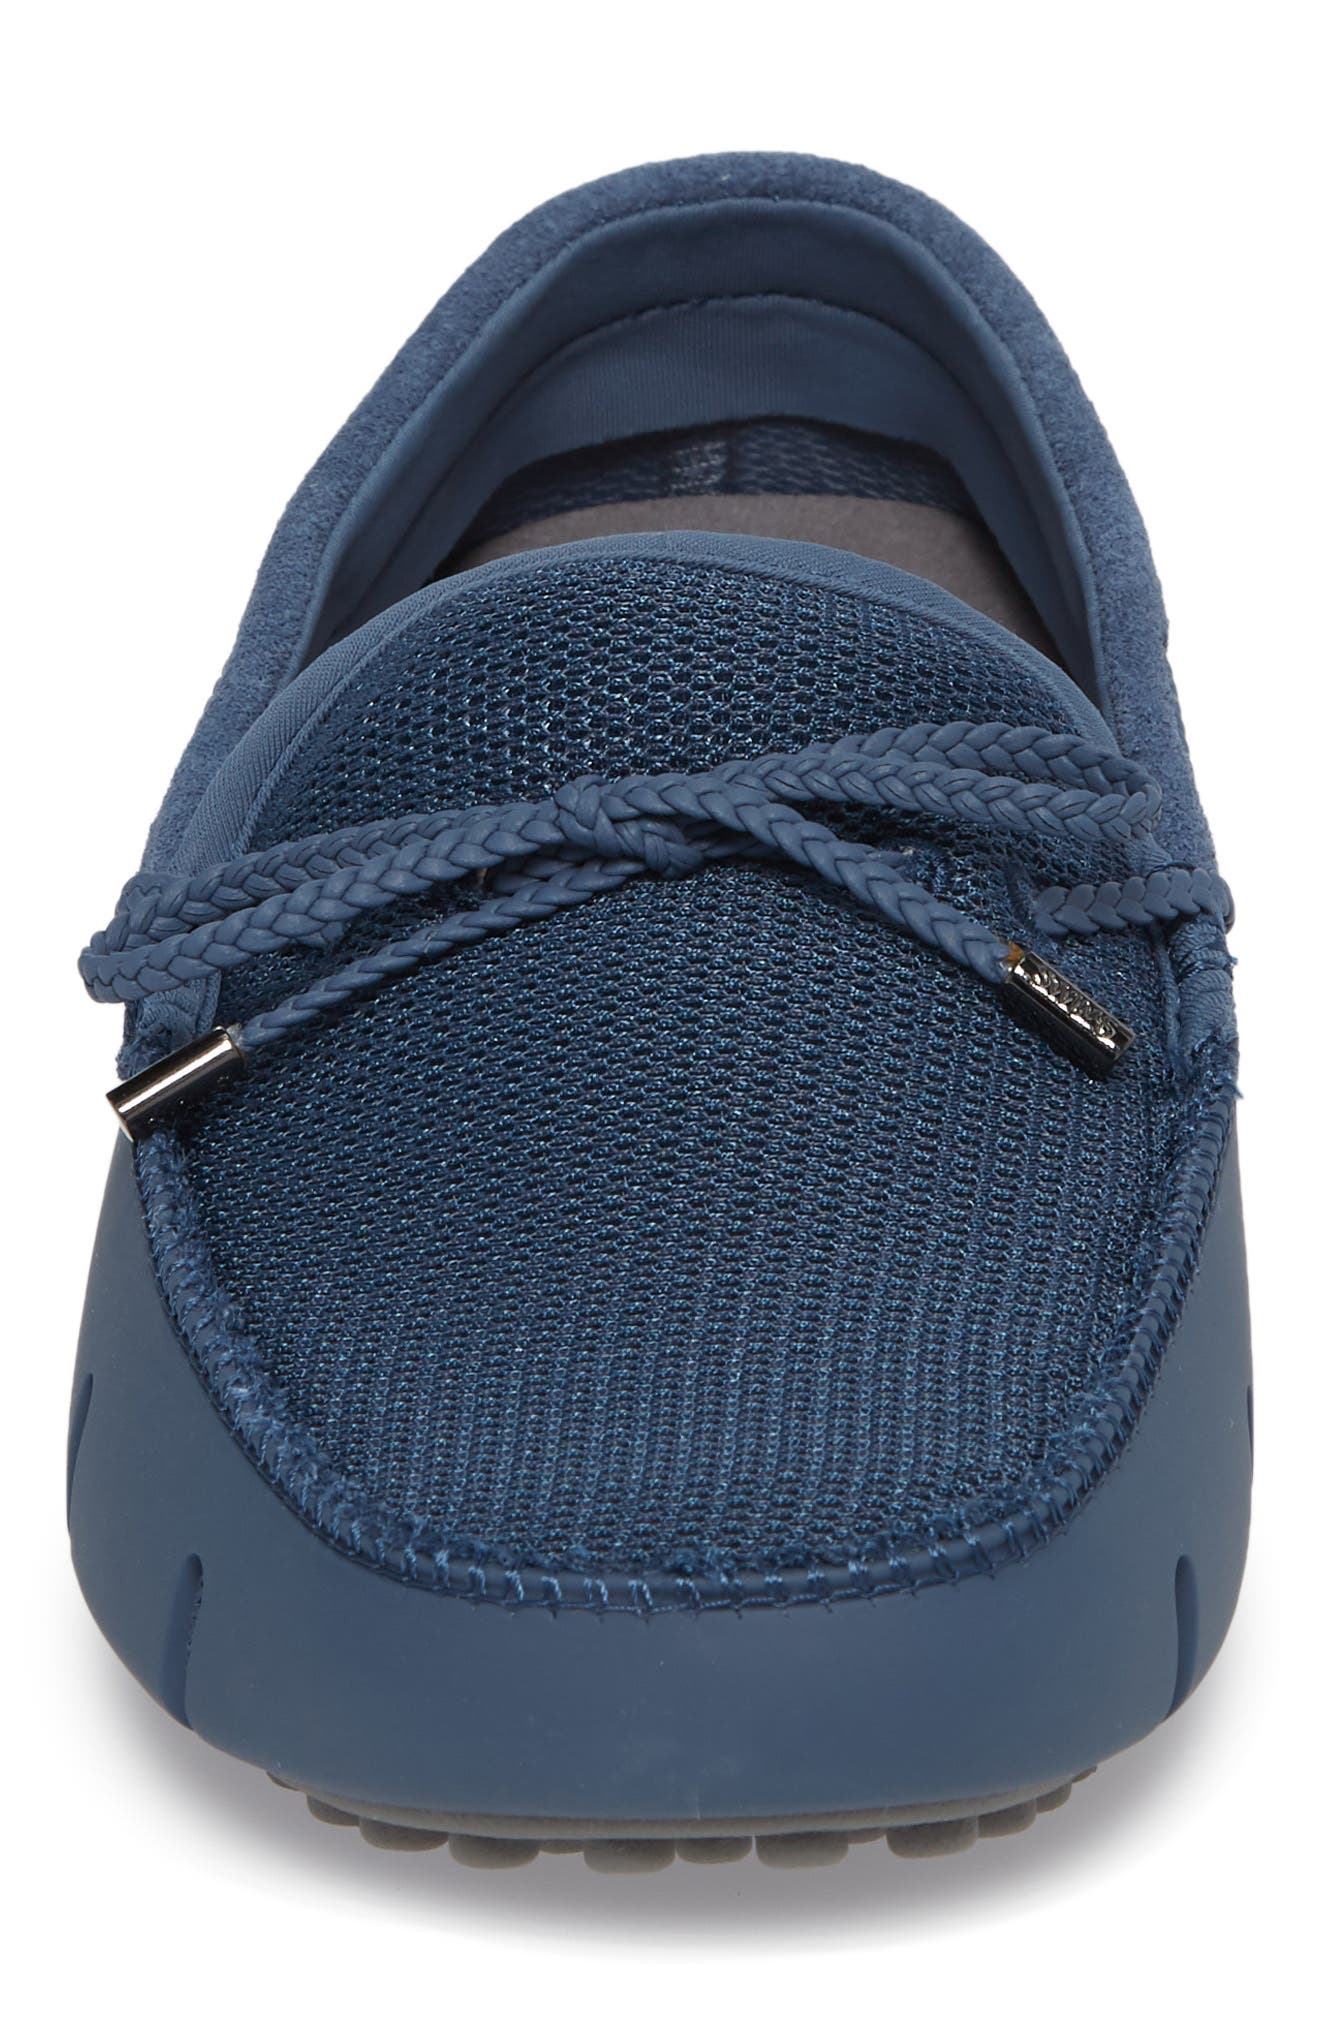 Washable Driving Loafer,                             Alternate thumbnail 4, color,                             Slate/ Grey Fabric